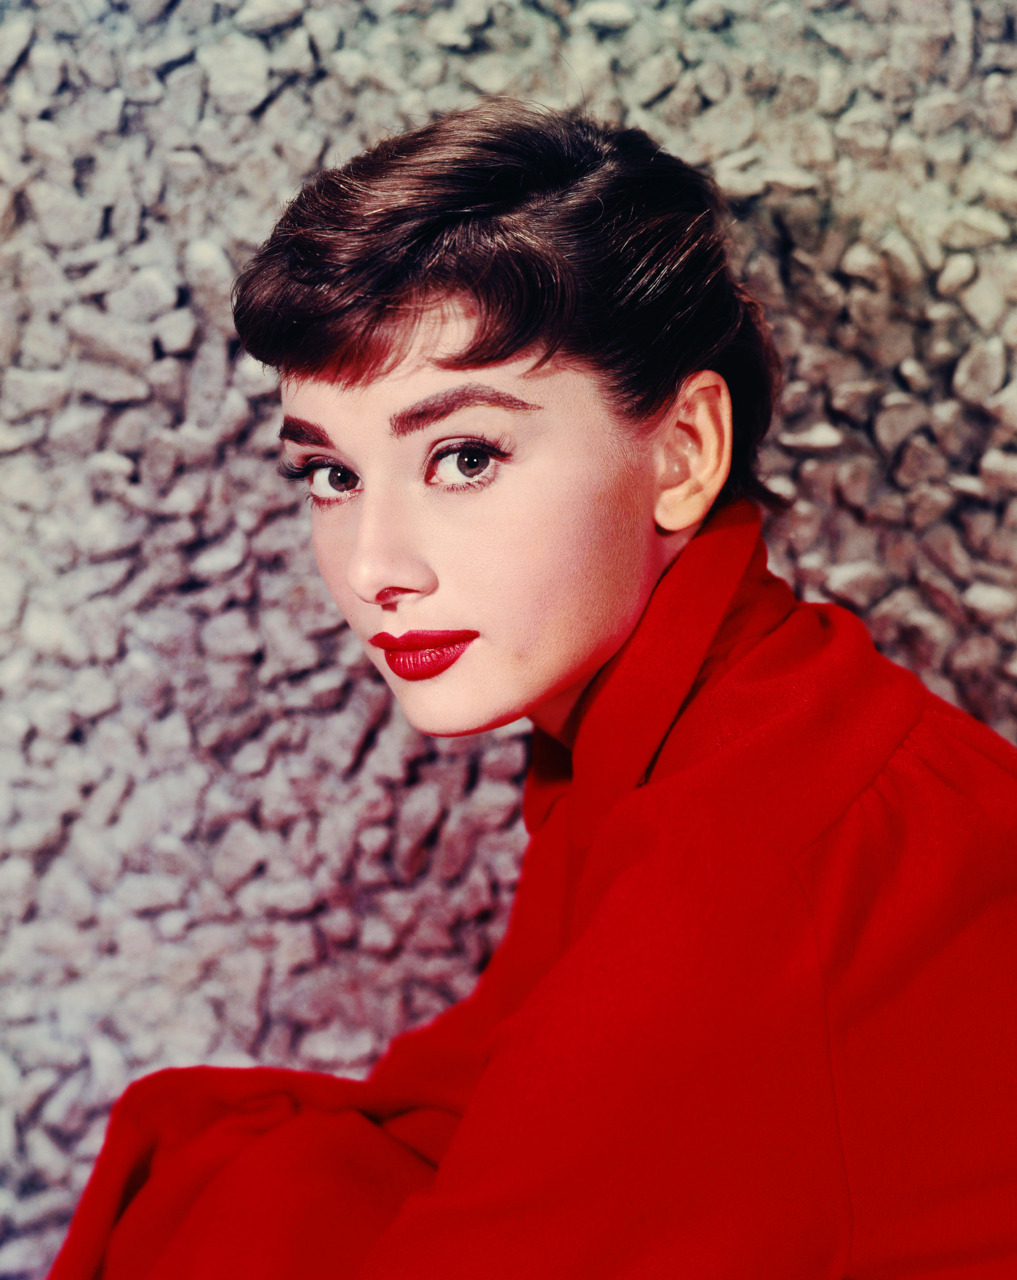 ca. 1954, USA --- Portrait of Audrey Hepburn in 1954. --- Image by © Sunset Boulevard/Corbis